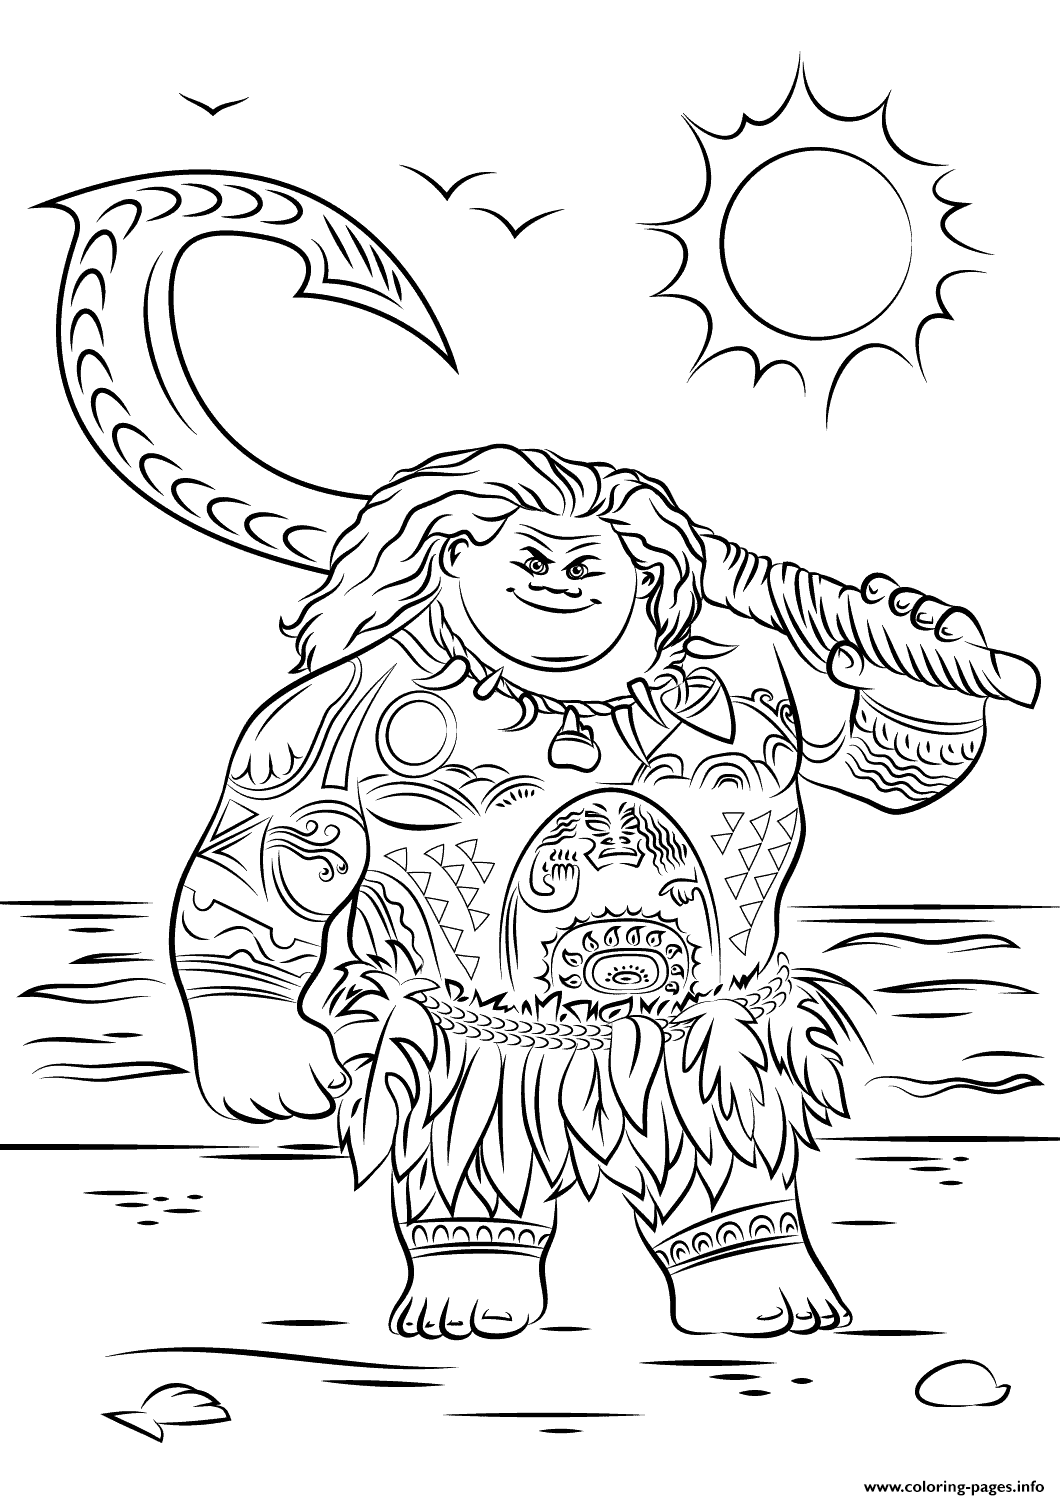 Maui From Moana Disney Coloring Pages Printable